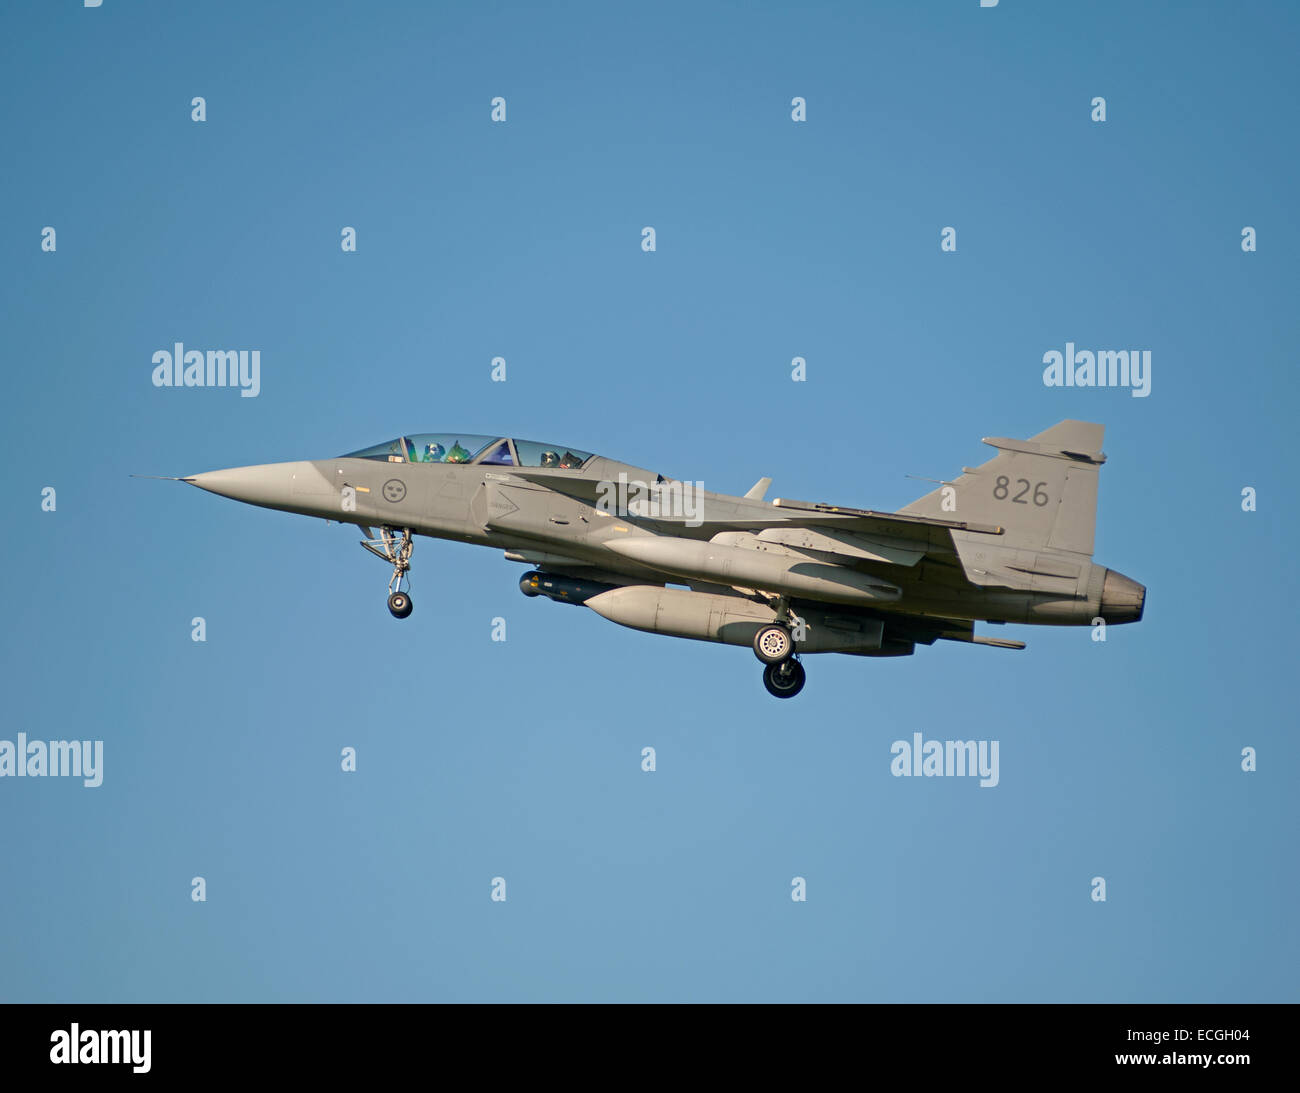 Saab Gripen Single seat Fighter Jet No 836 approaching RAF Lossiemouth Scotland.  SCO 9354. - Stock Image